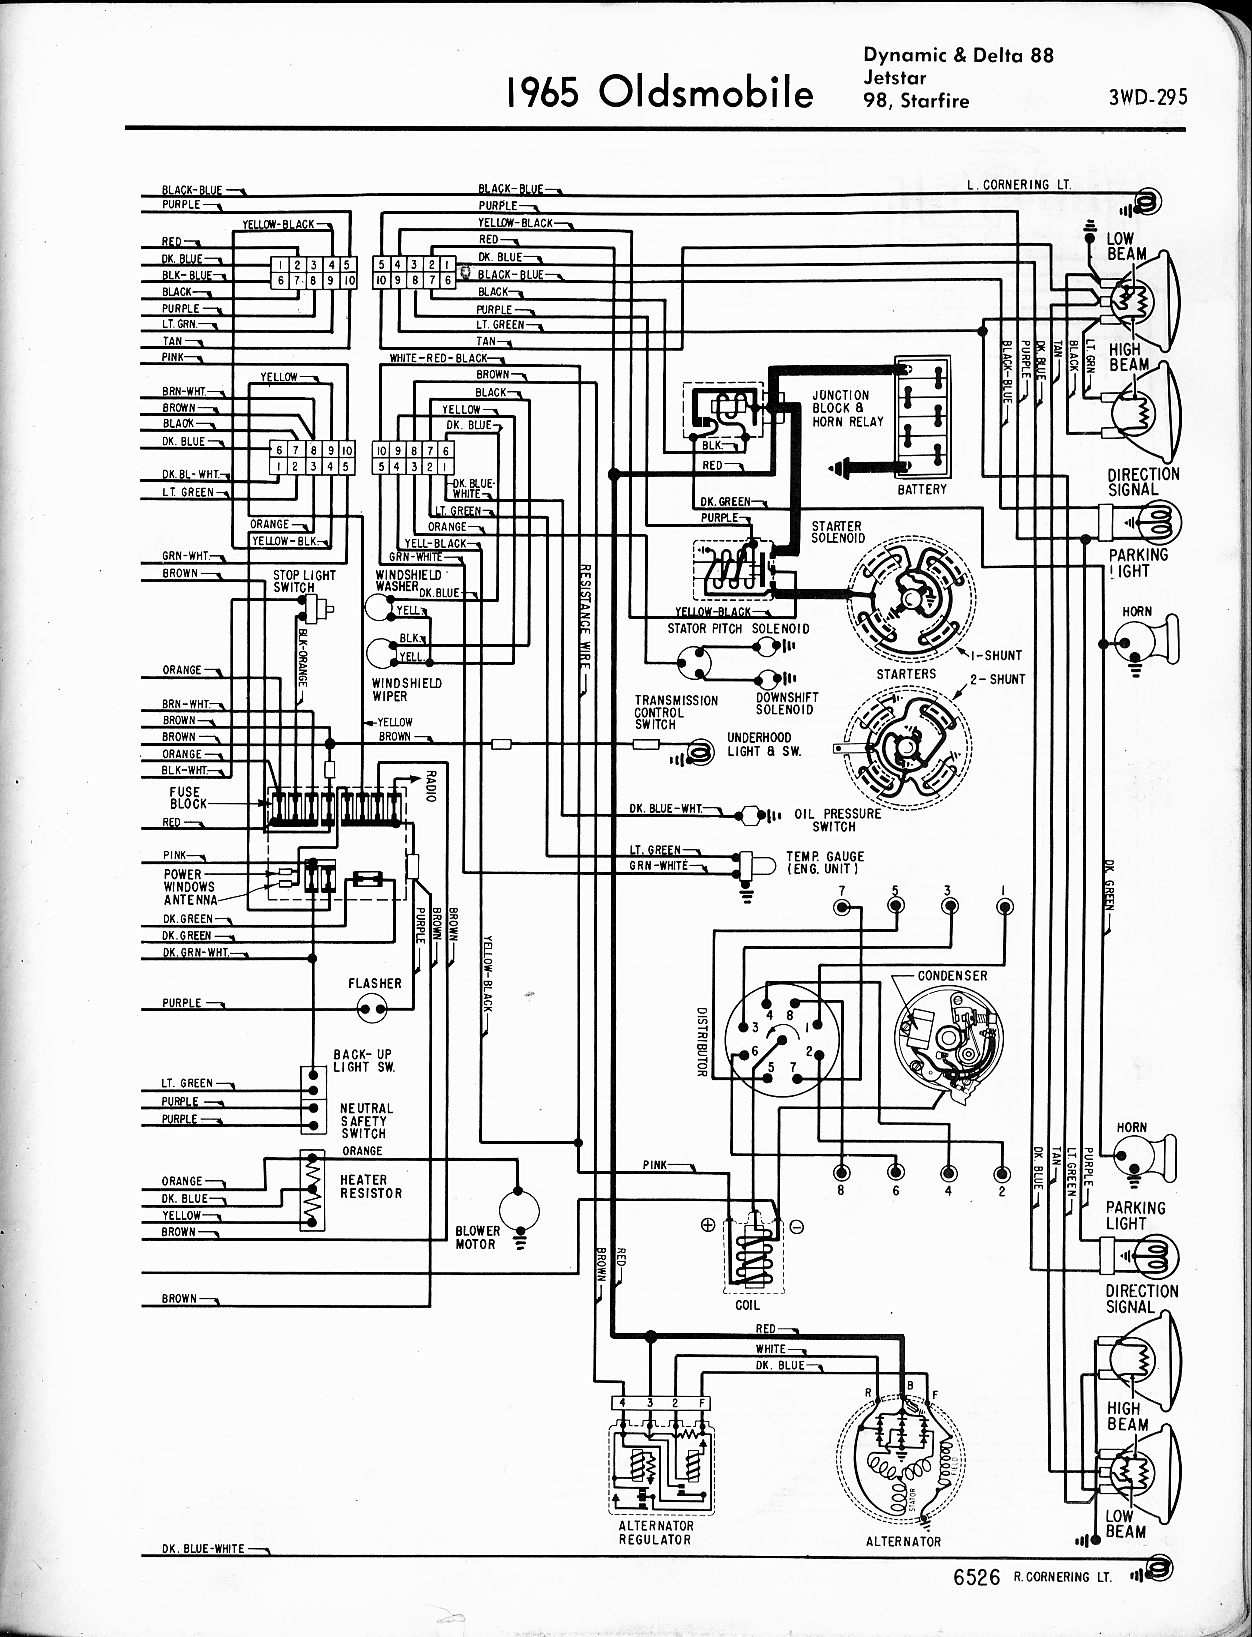 Wiring Diagram Radio For 1988 Oldsmobile on 1969 vw beetle fuse box